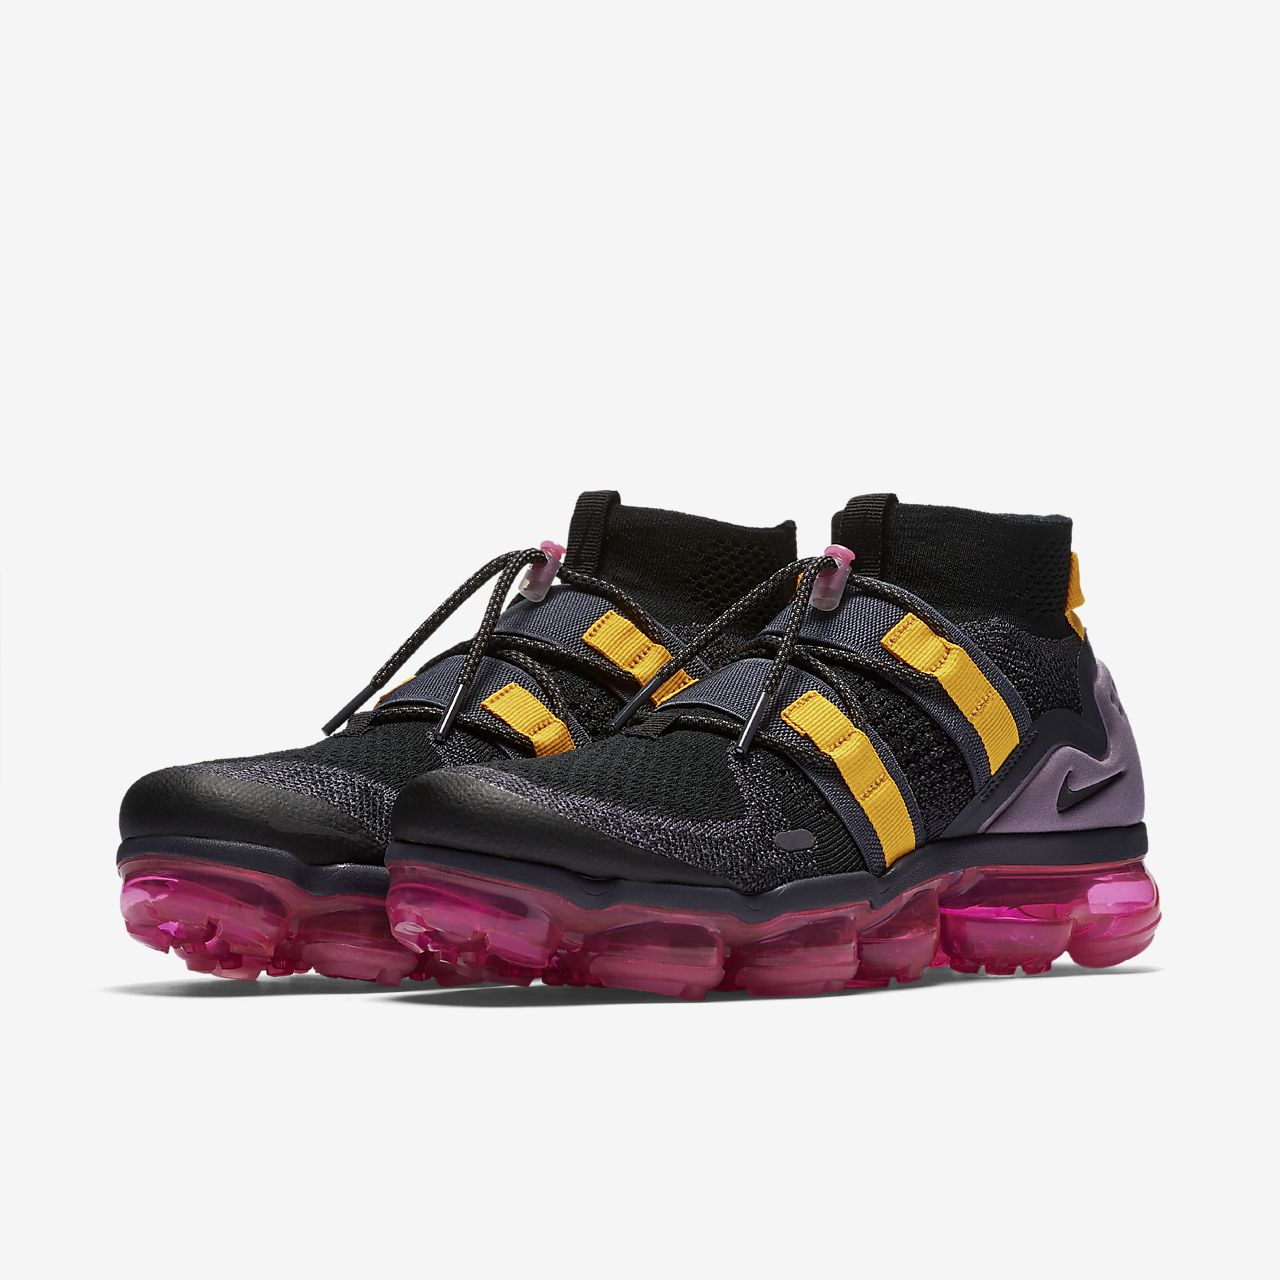 new concept edcd5 10a58 ... Nike Air VaporMax Flyknit Utility Shoe